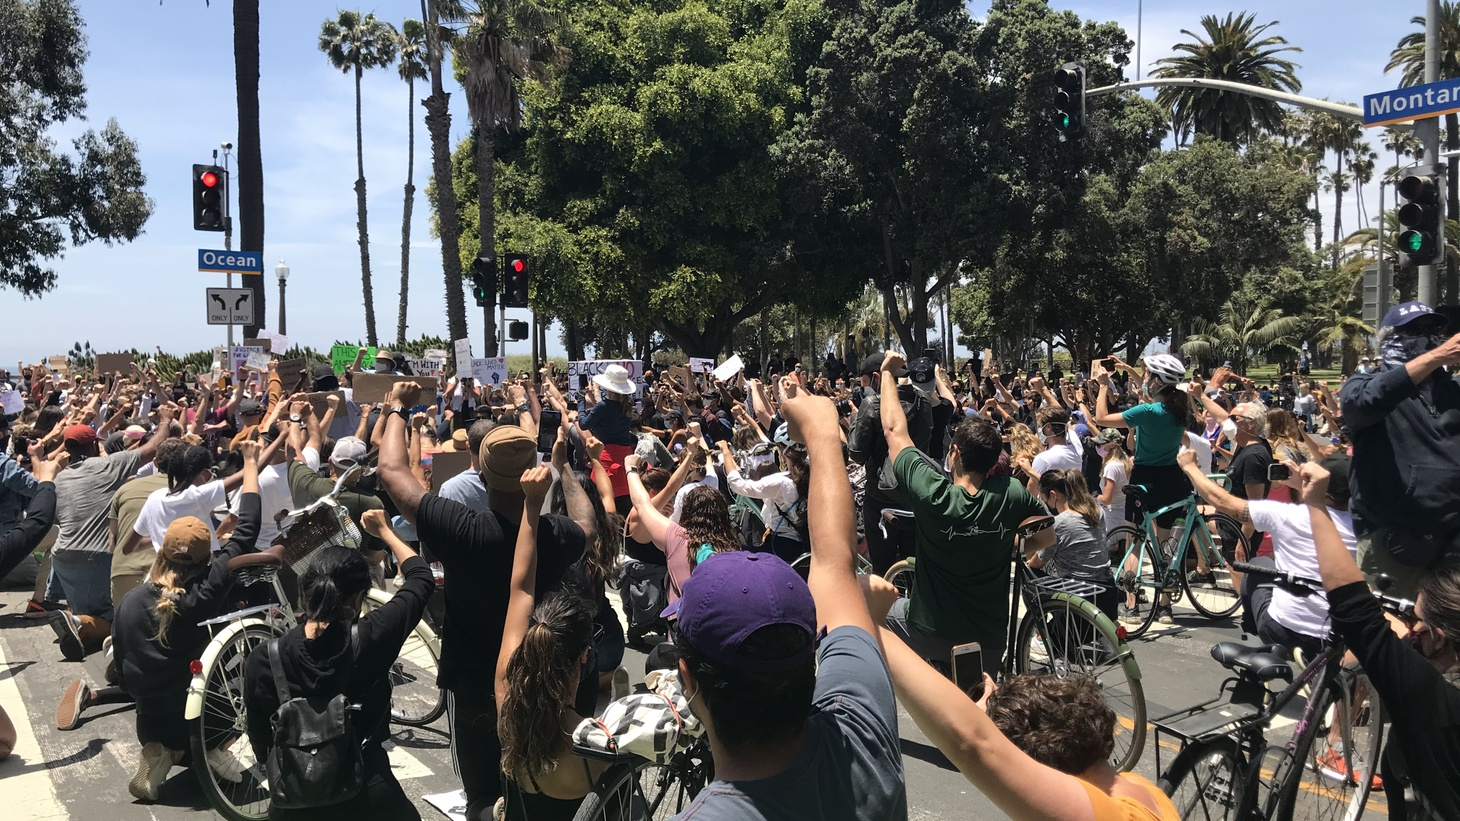 Sunday morning, May 31: protestors gather at Ocean and Montana Avenue in Santa Monica to register their support for an end to racial injustice. Photo by Frances Anderton.